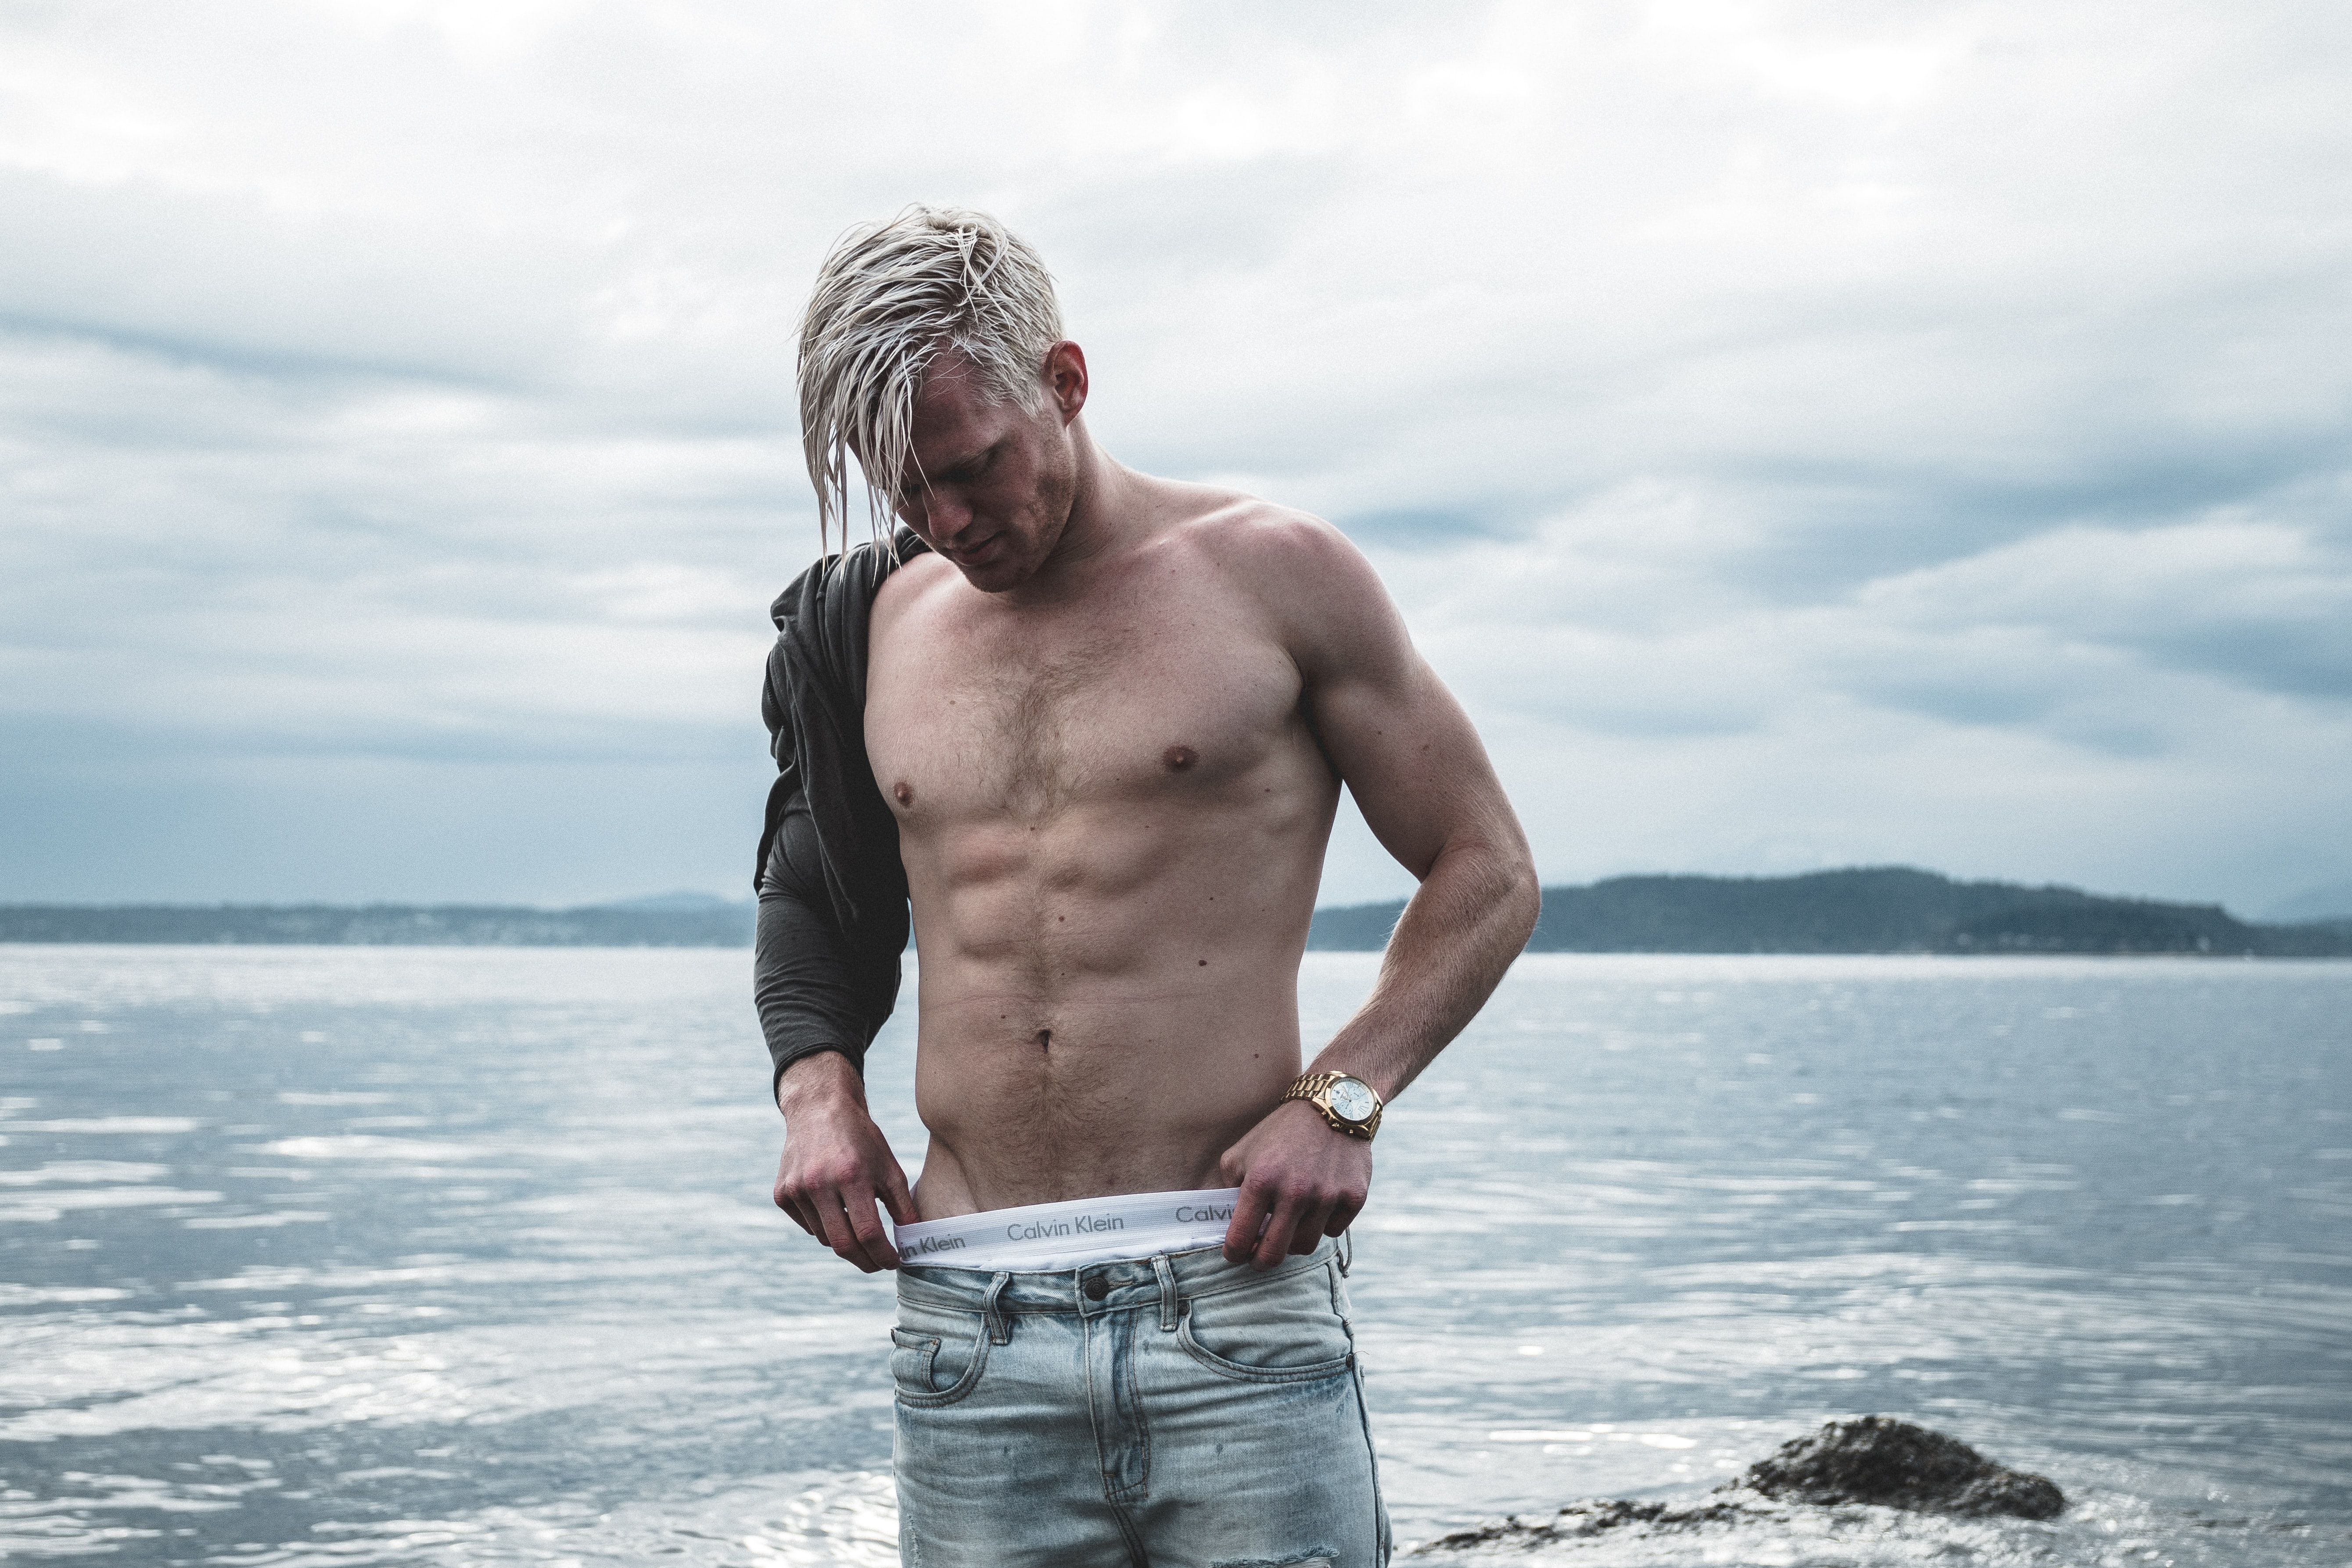 topless man wearing gray denim bottoms standing on shore at daytime